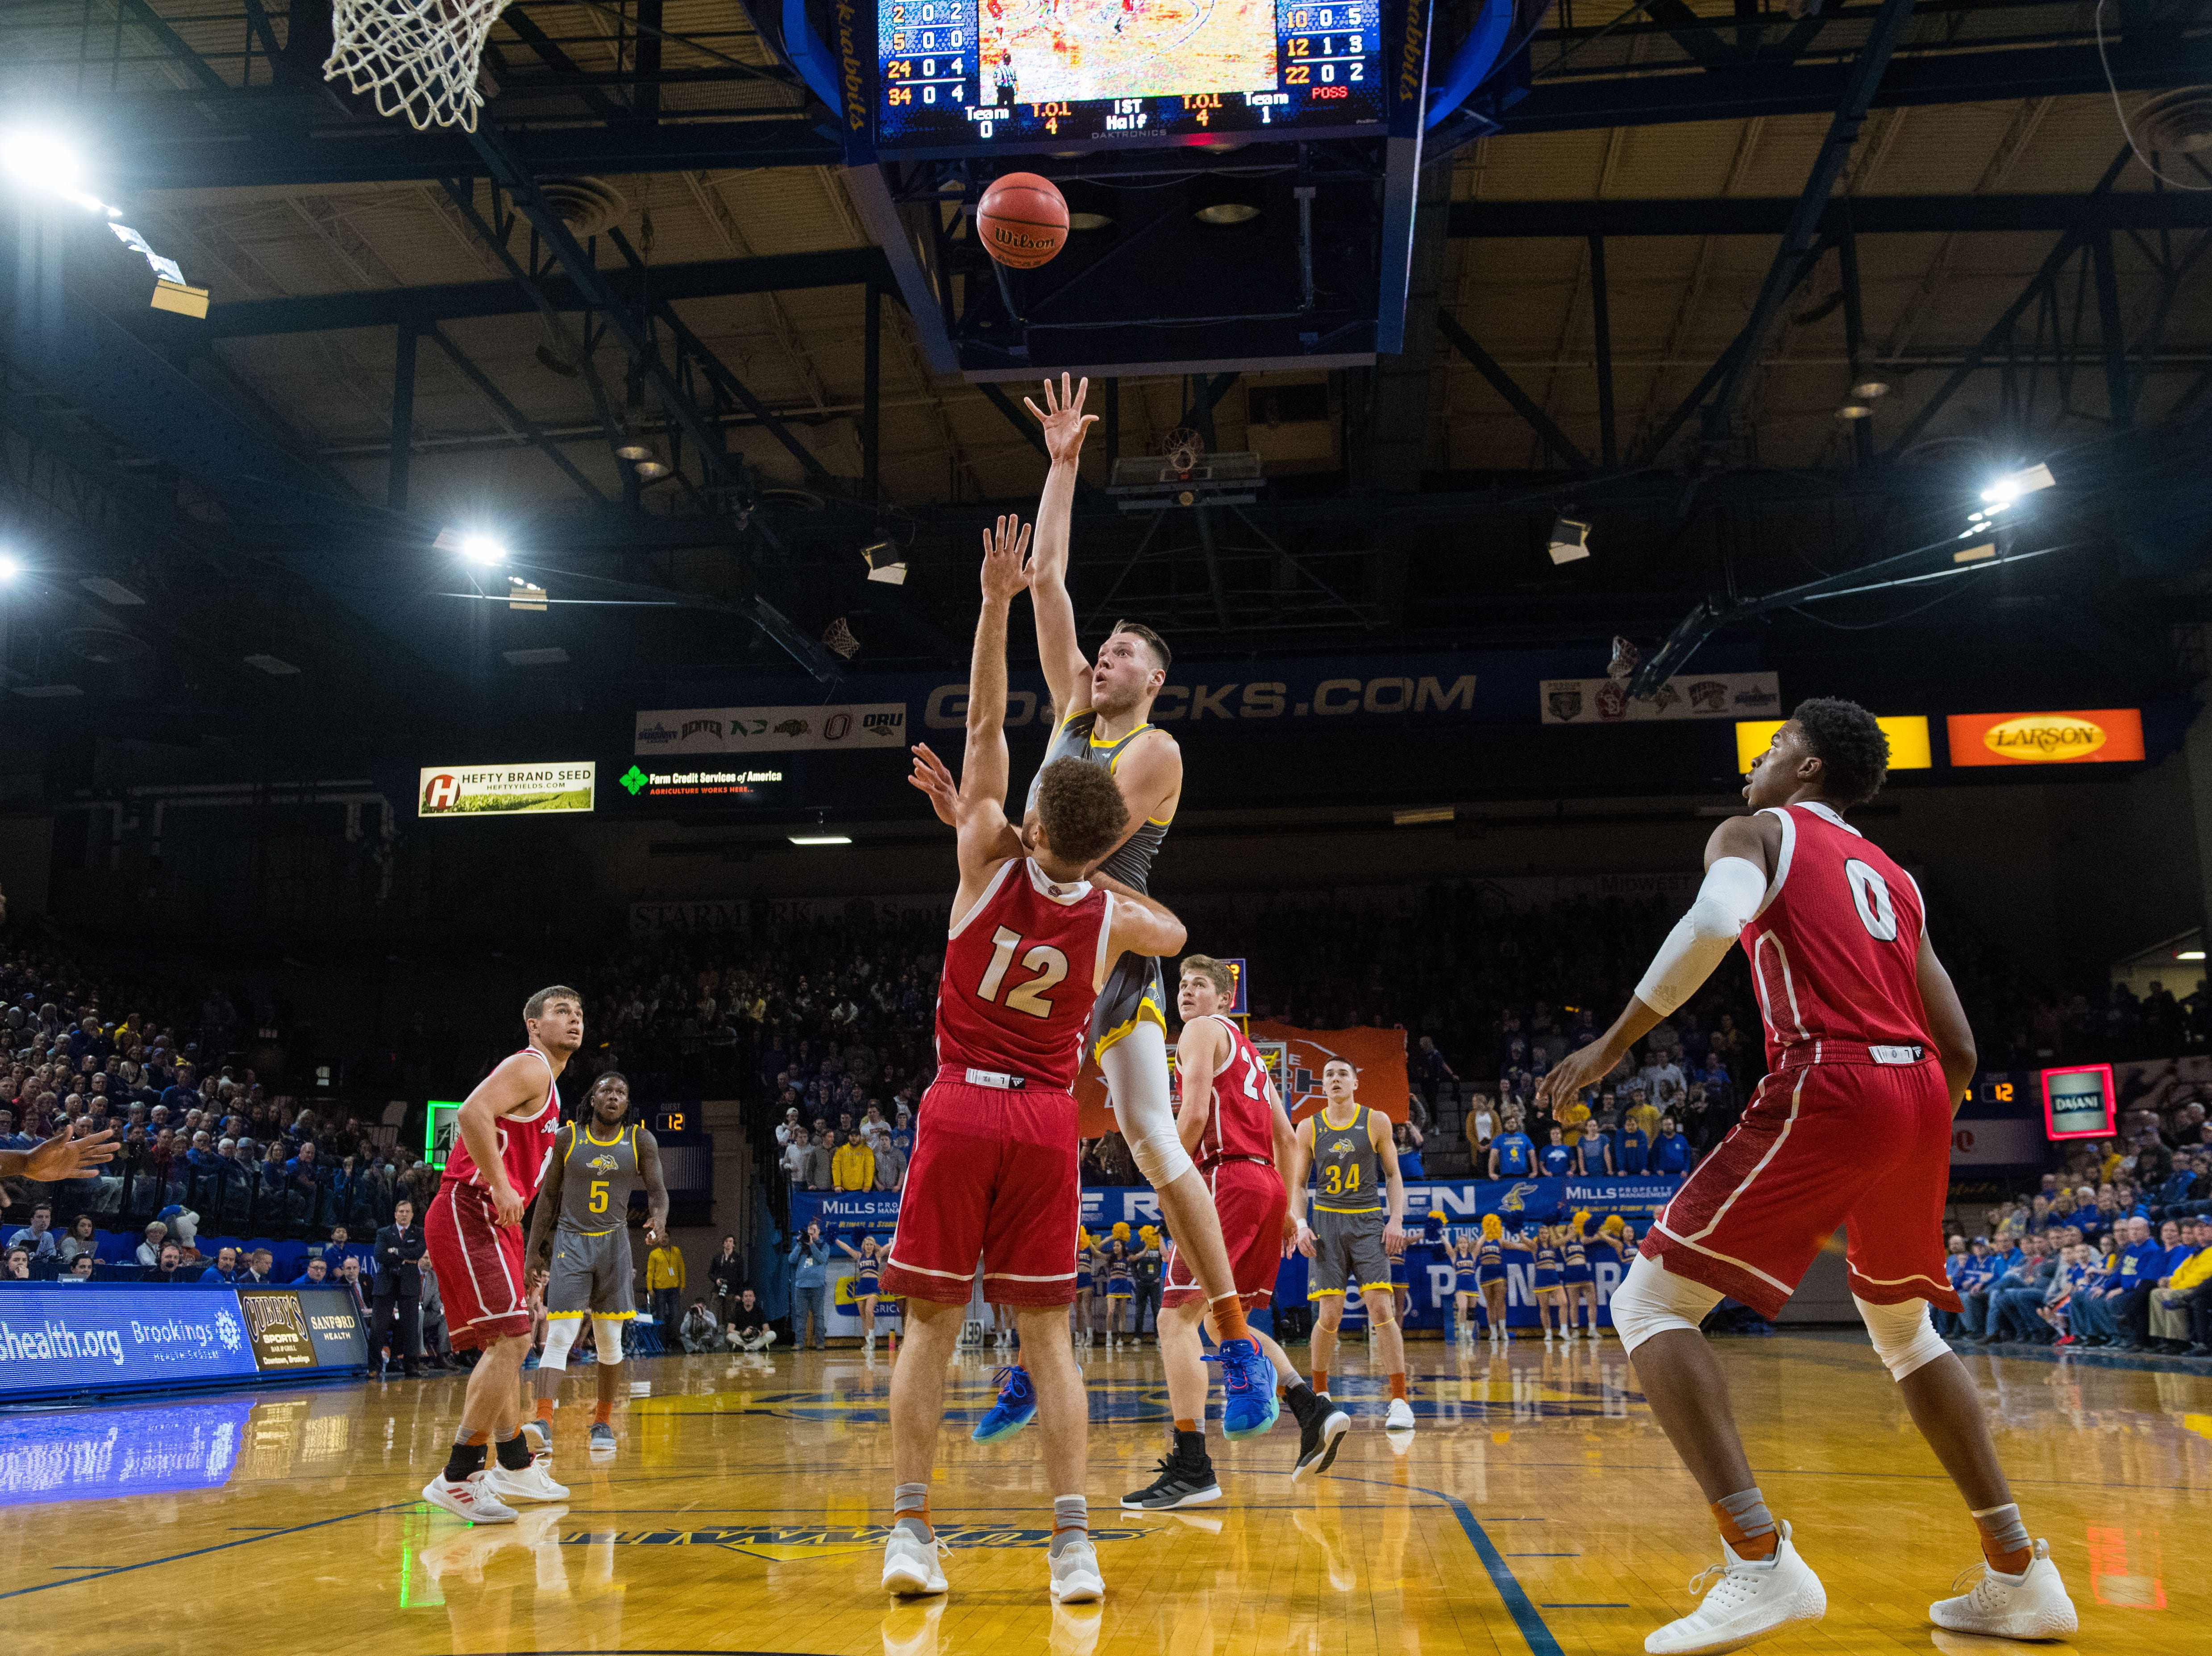 SDSU's Mike Daum (24) shoots the ball over USD players during a game, Feb. 23, 2019 in Brookings, S.D.